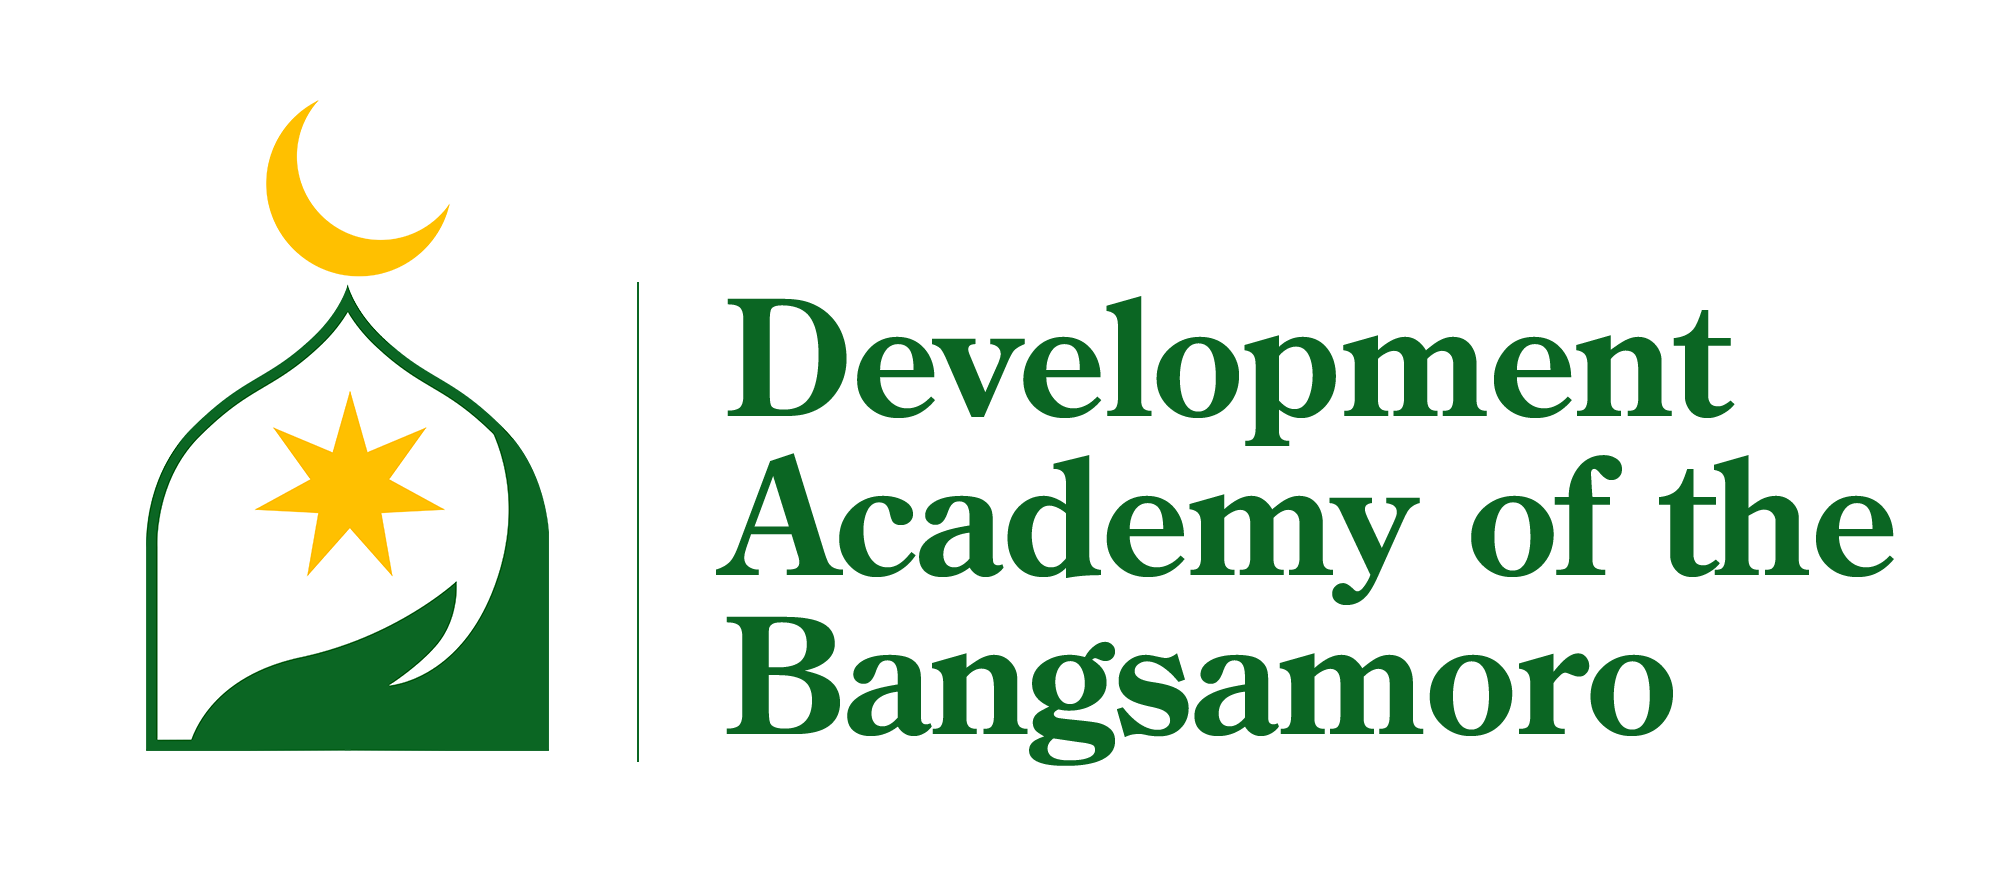 Development Academy of The Bangsamoro